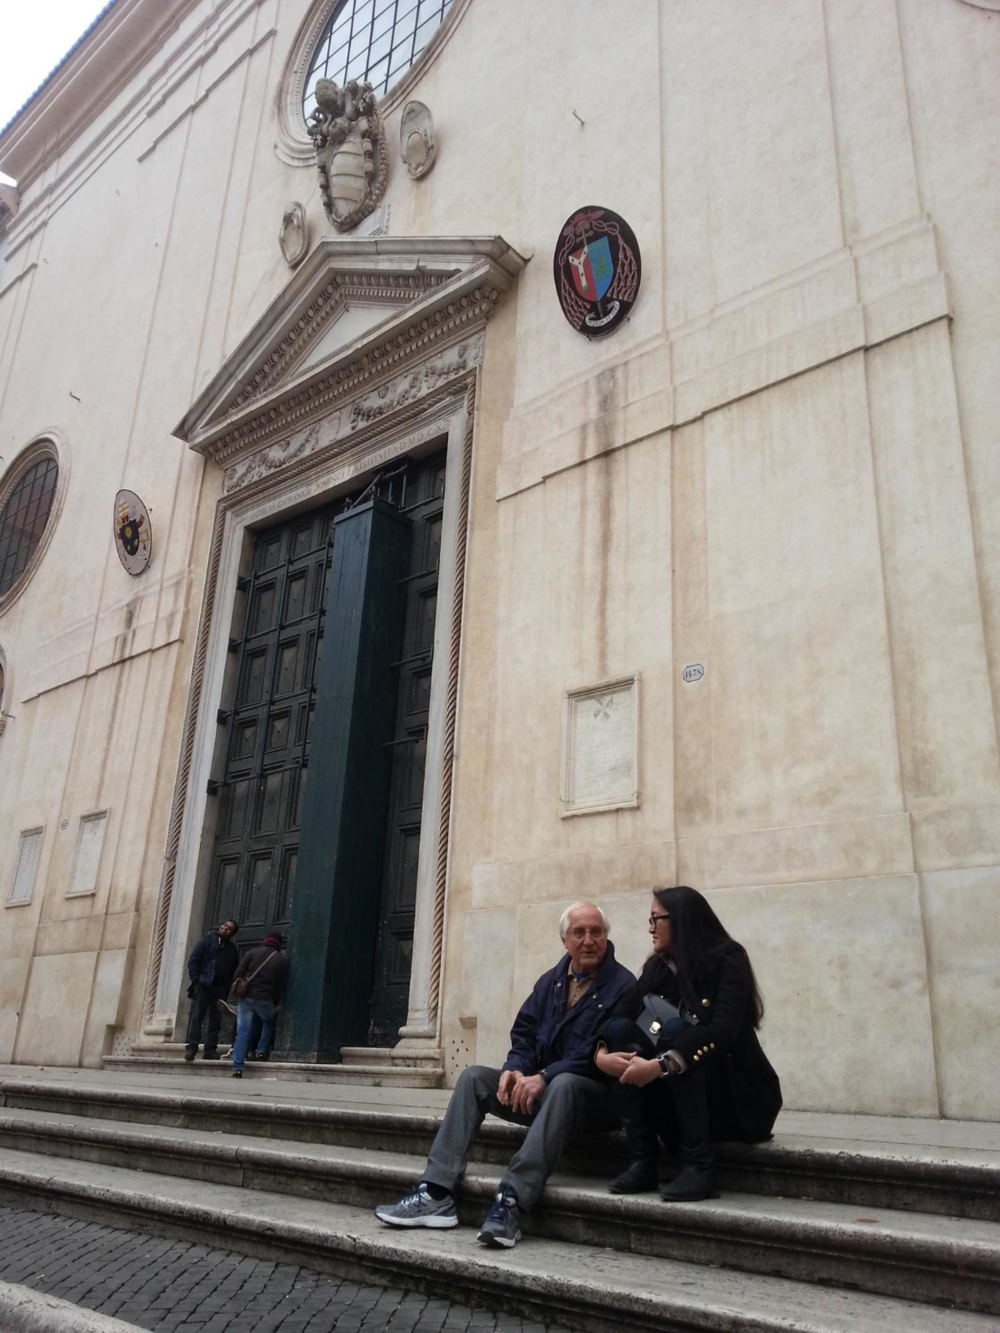 On the steps of the Basilica Santa Maria Sopra Minerva.